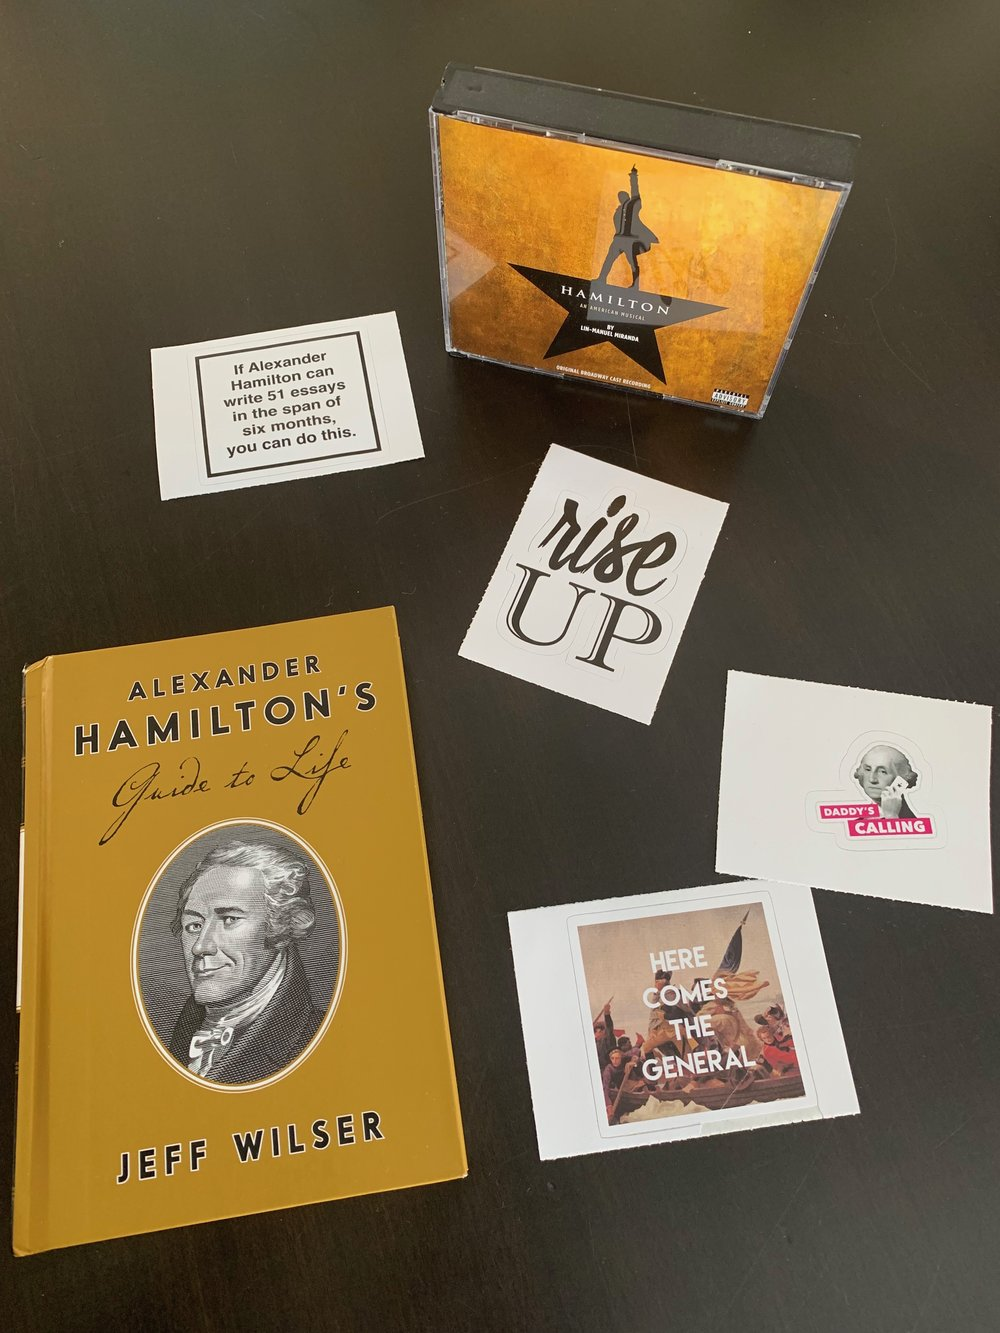 "P.S. In case you need to  pinch  a Hamilton fan in your life here are some fun items. 1)The CDs are second best to seeing the musical in person. 2)There are tons of stickers from  Red Bubble  - the one that hangs on my bulletin board is ""If Alexander Hamilton can write 51 essays in a span of six months you can do this."" - Motivating. 3) I bought the Guide To Life book at Patina but I'm sure you know where else you can find a copy."